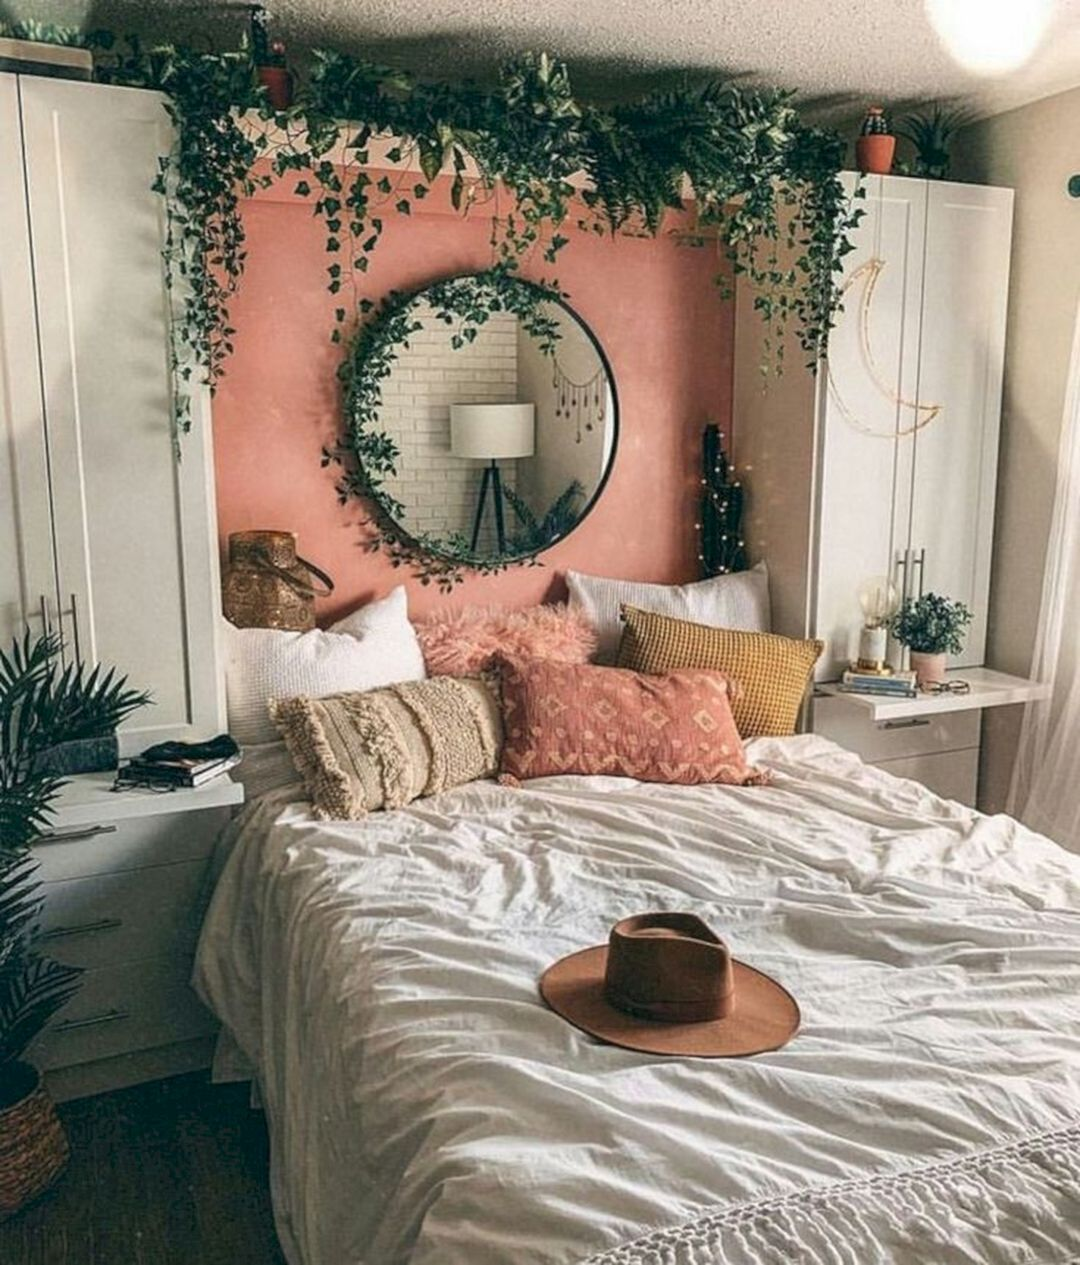 20 Affordable Bedroom Ideas With Christmas Wall Decoration Small Room Bedroom Small Bedroom Designs Boho Bedroom Decor